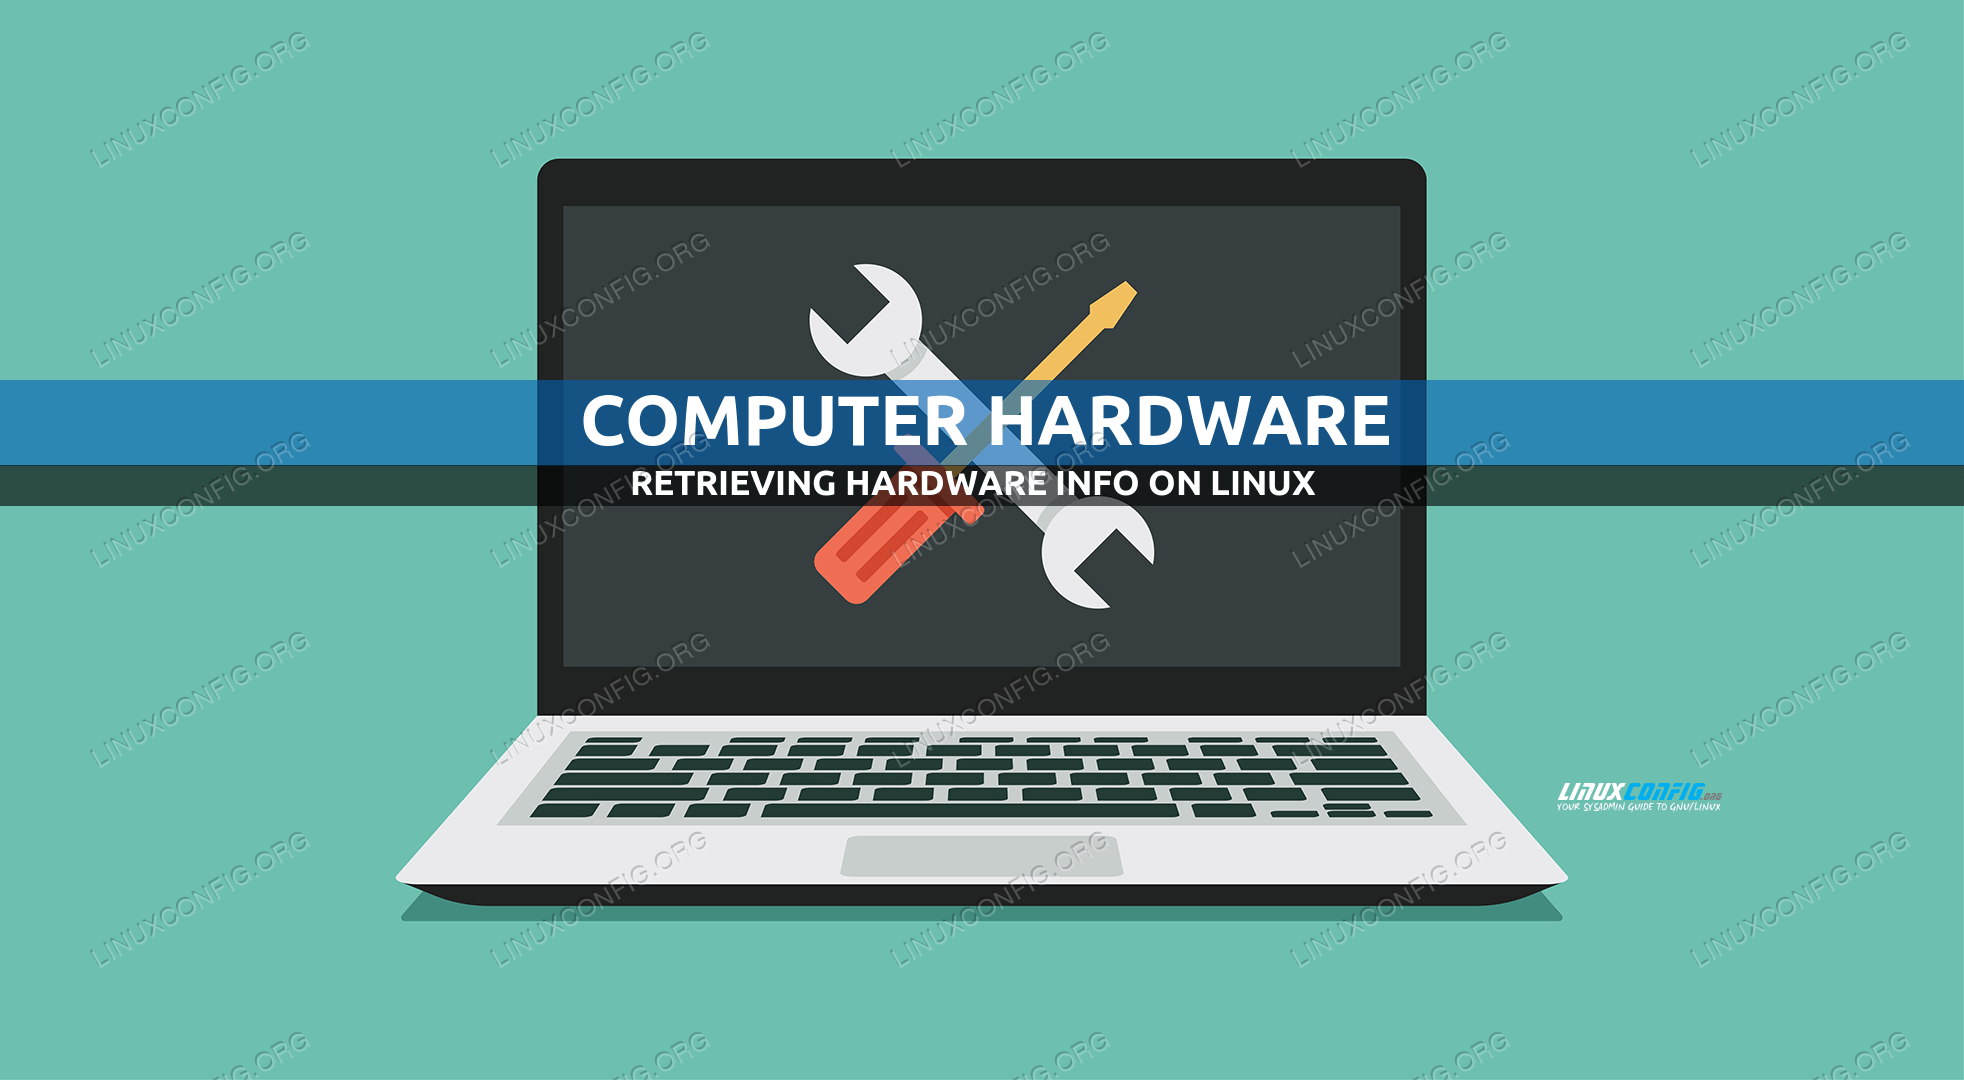 Getting to know the hardware of your Linux box